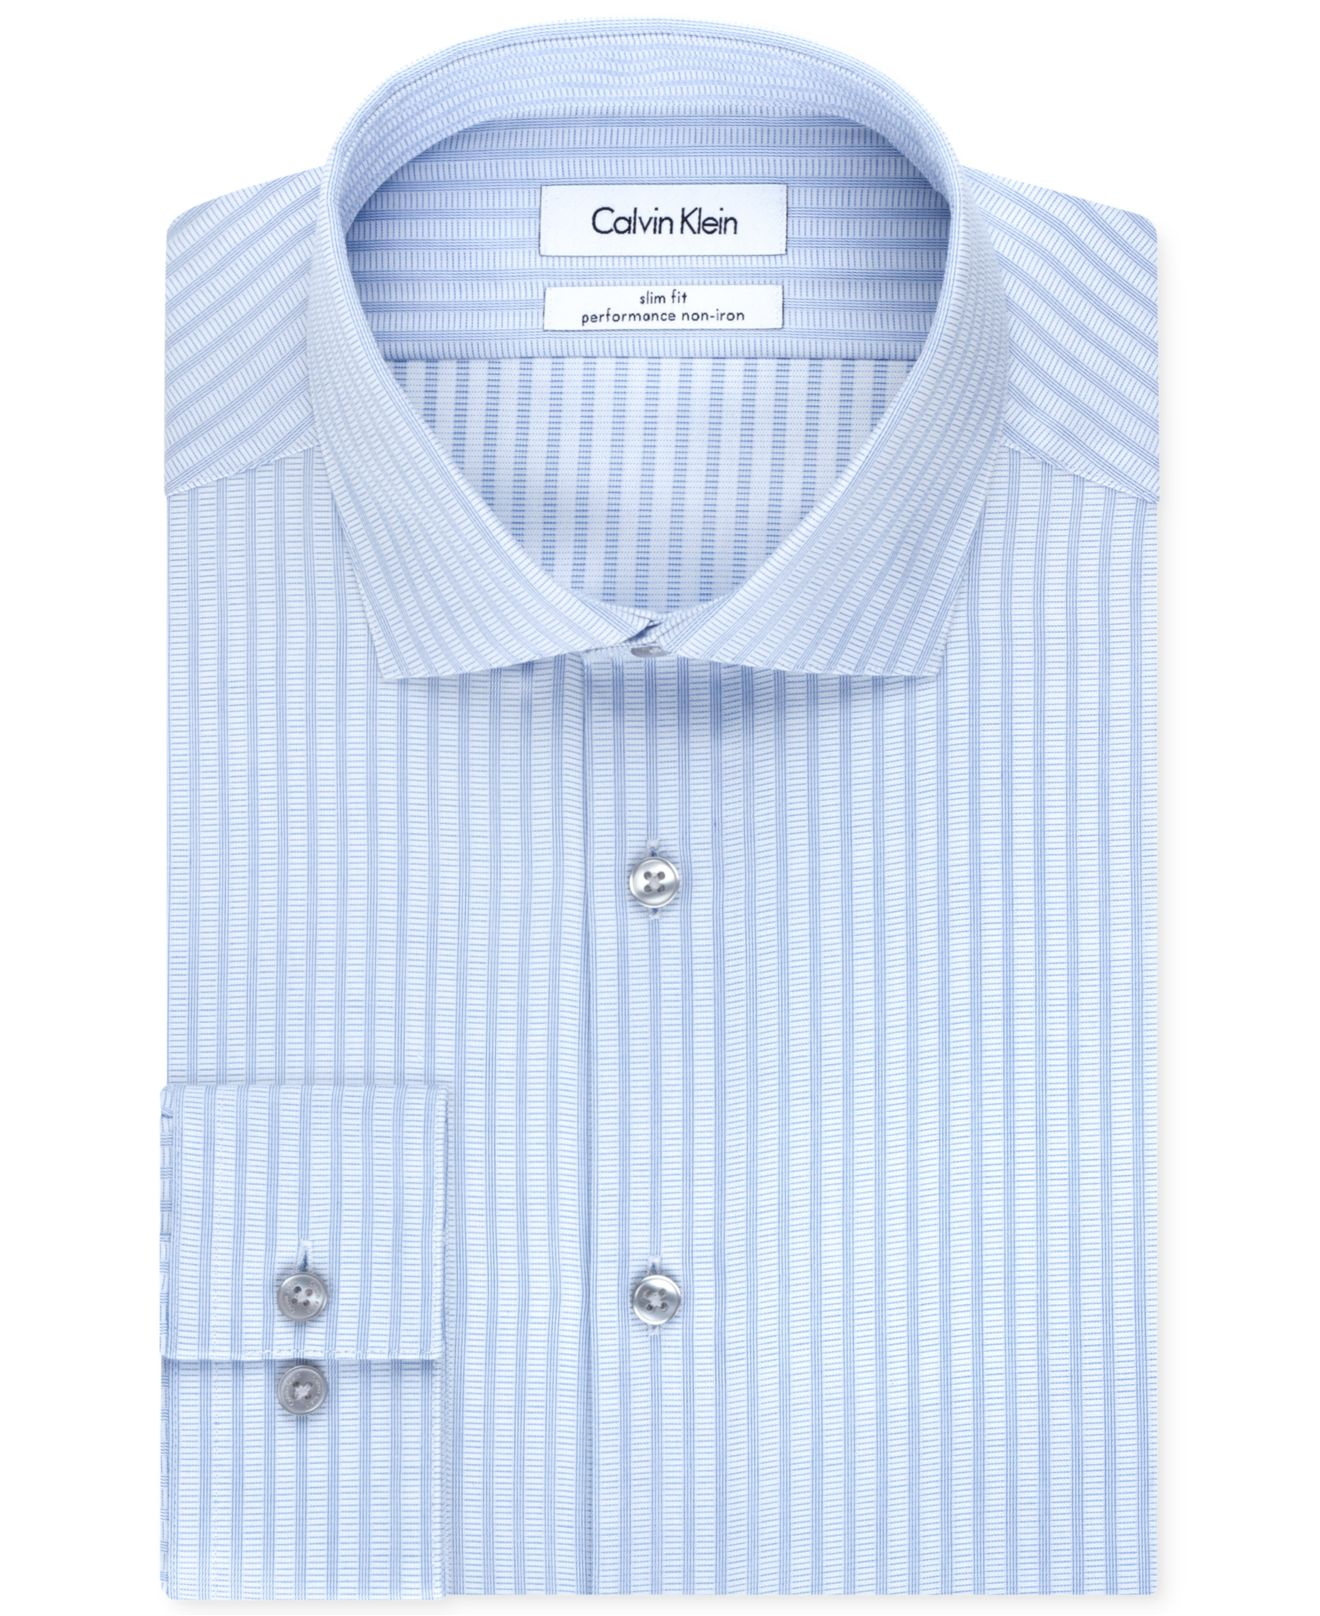 Lyst calvin klein steel non iron slim fit light blue for Calvin klein athletic fit dress shirt